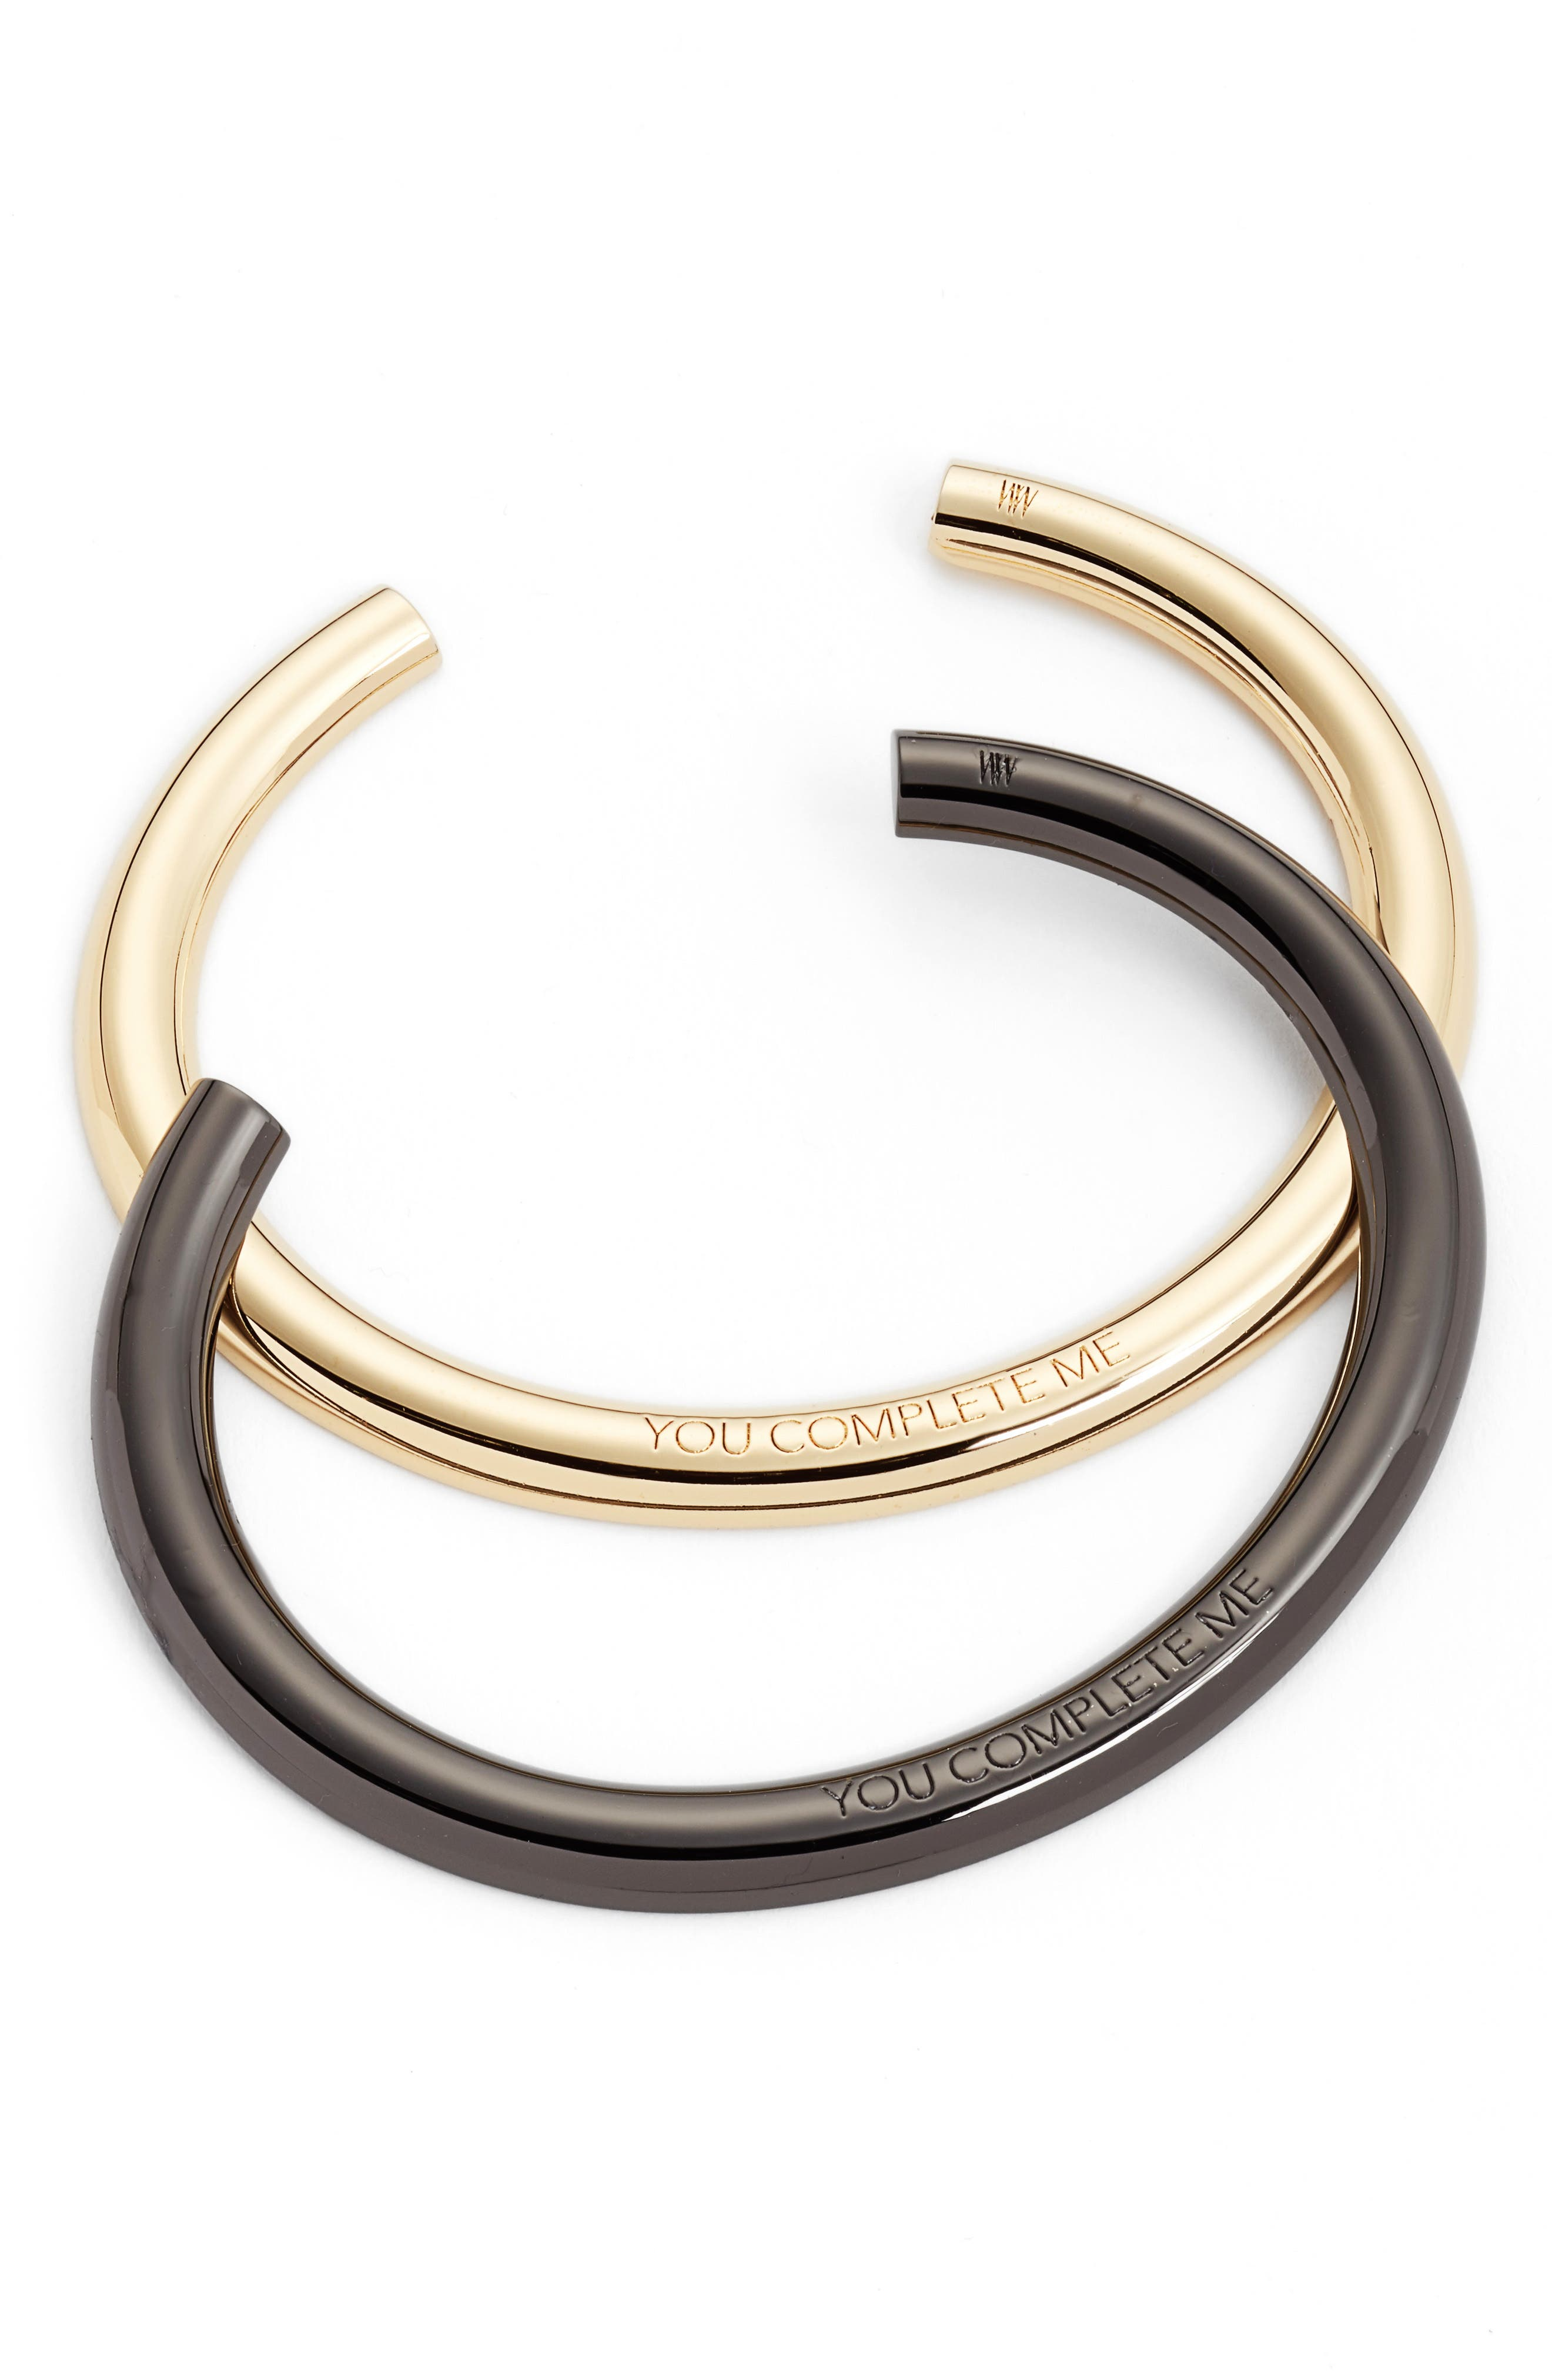 STELLA VALLE You Complete Me Set of 2 Cuffs